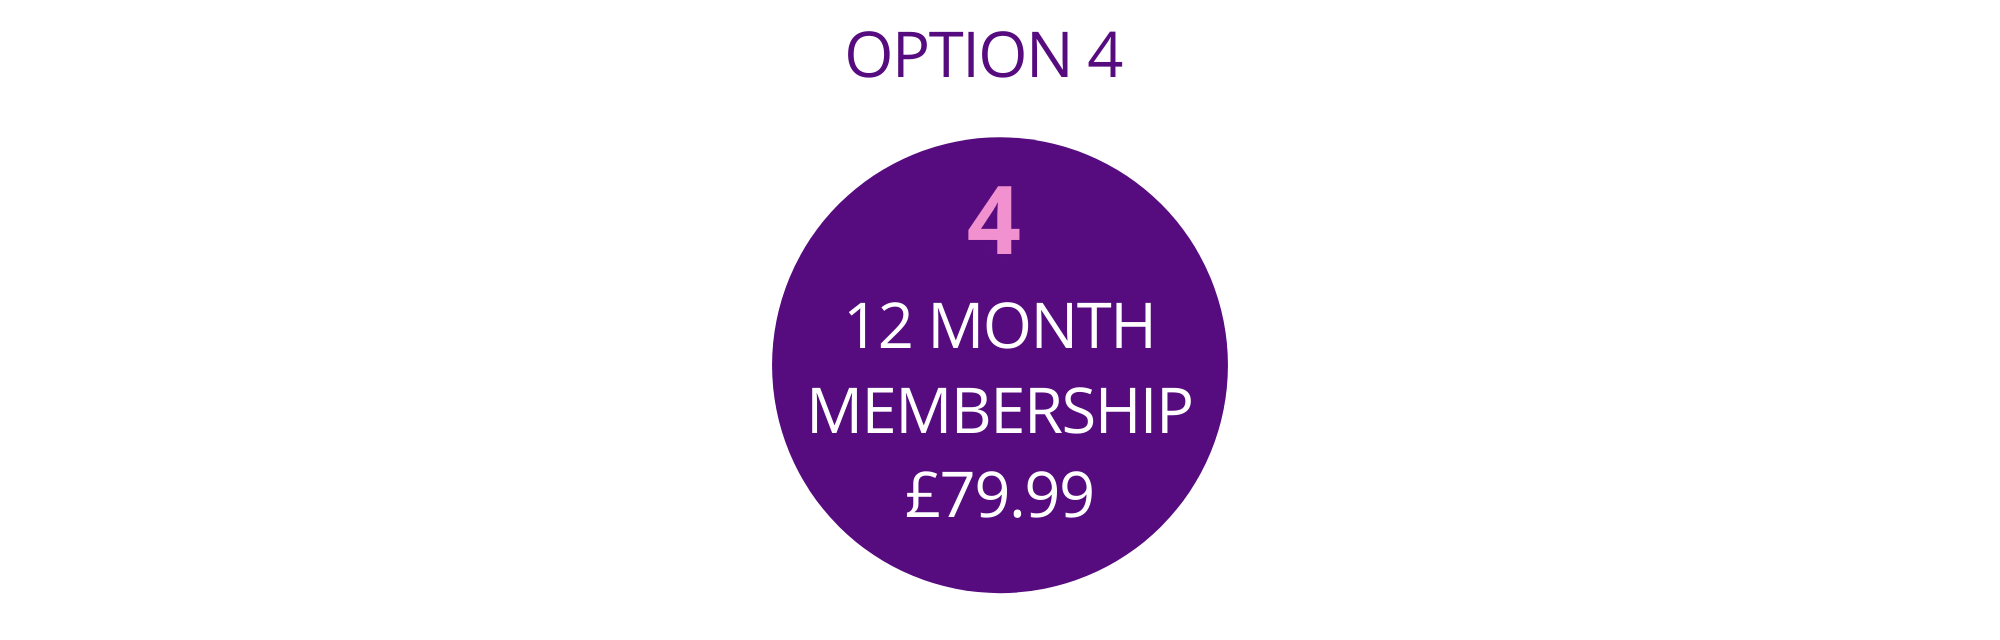 Bandboozled Weight Loss Surgery Support Free month Offer 4